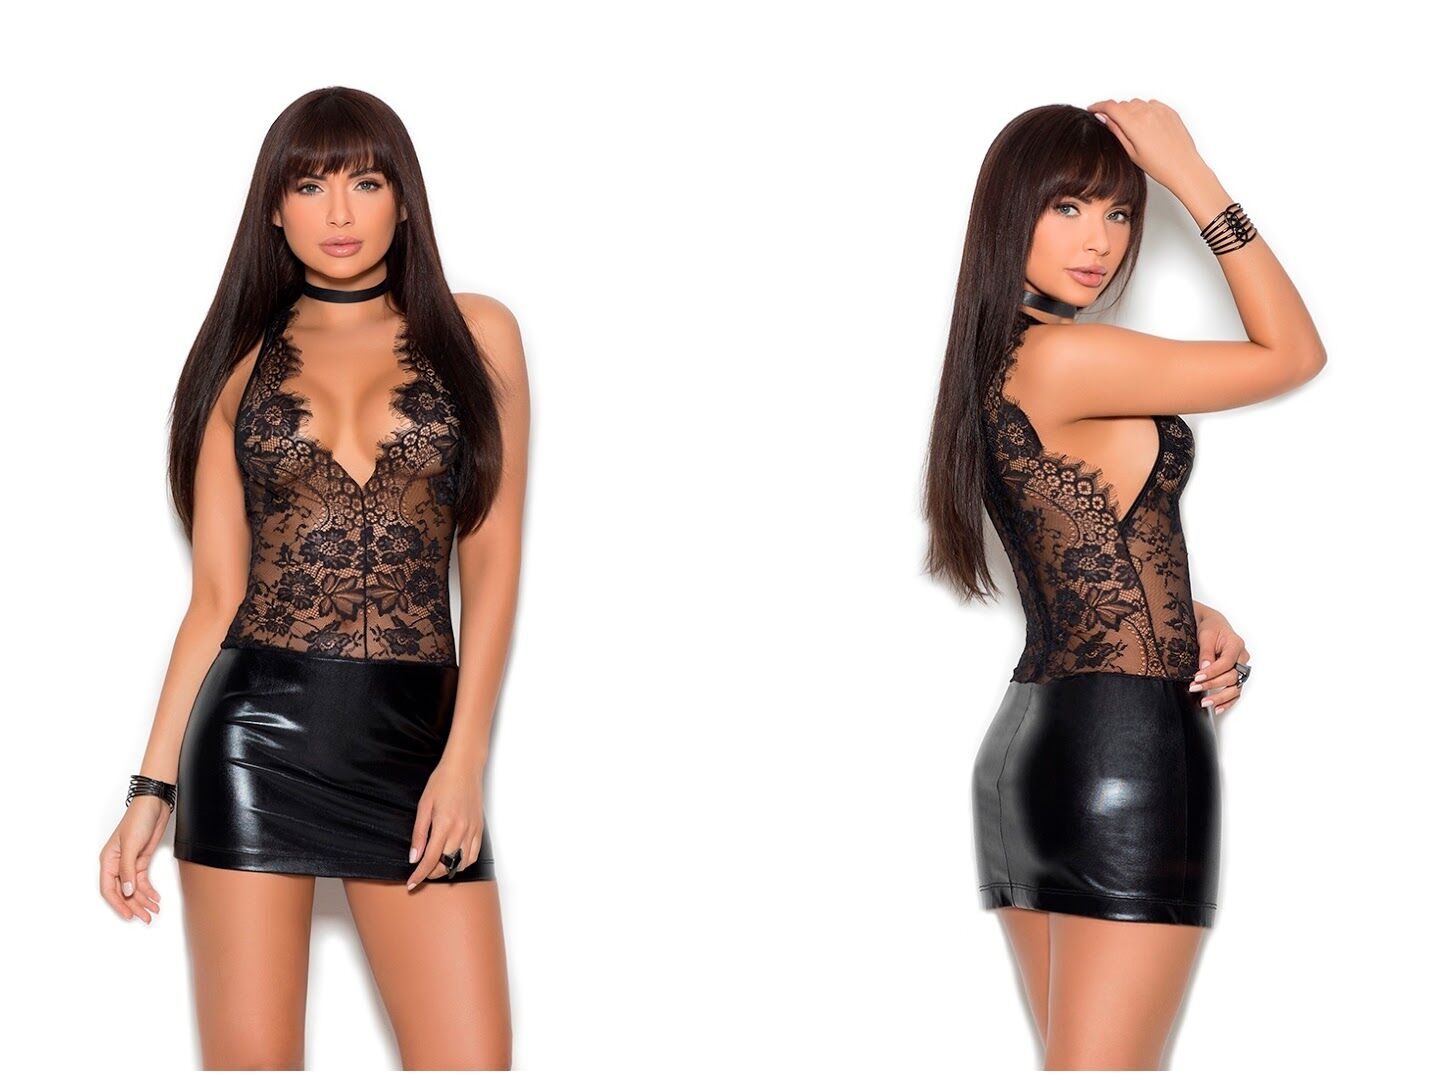 Black Eyelash Lace V-Neck Mini Dress with Wetlook Bottom-Half